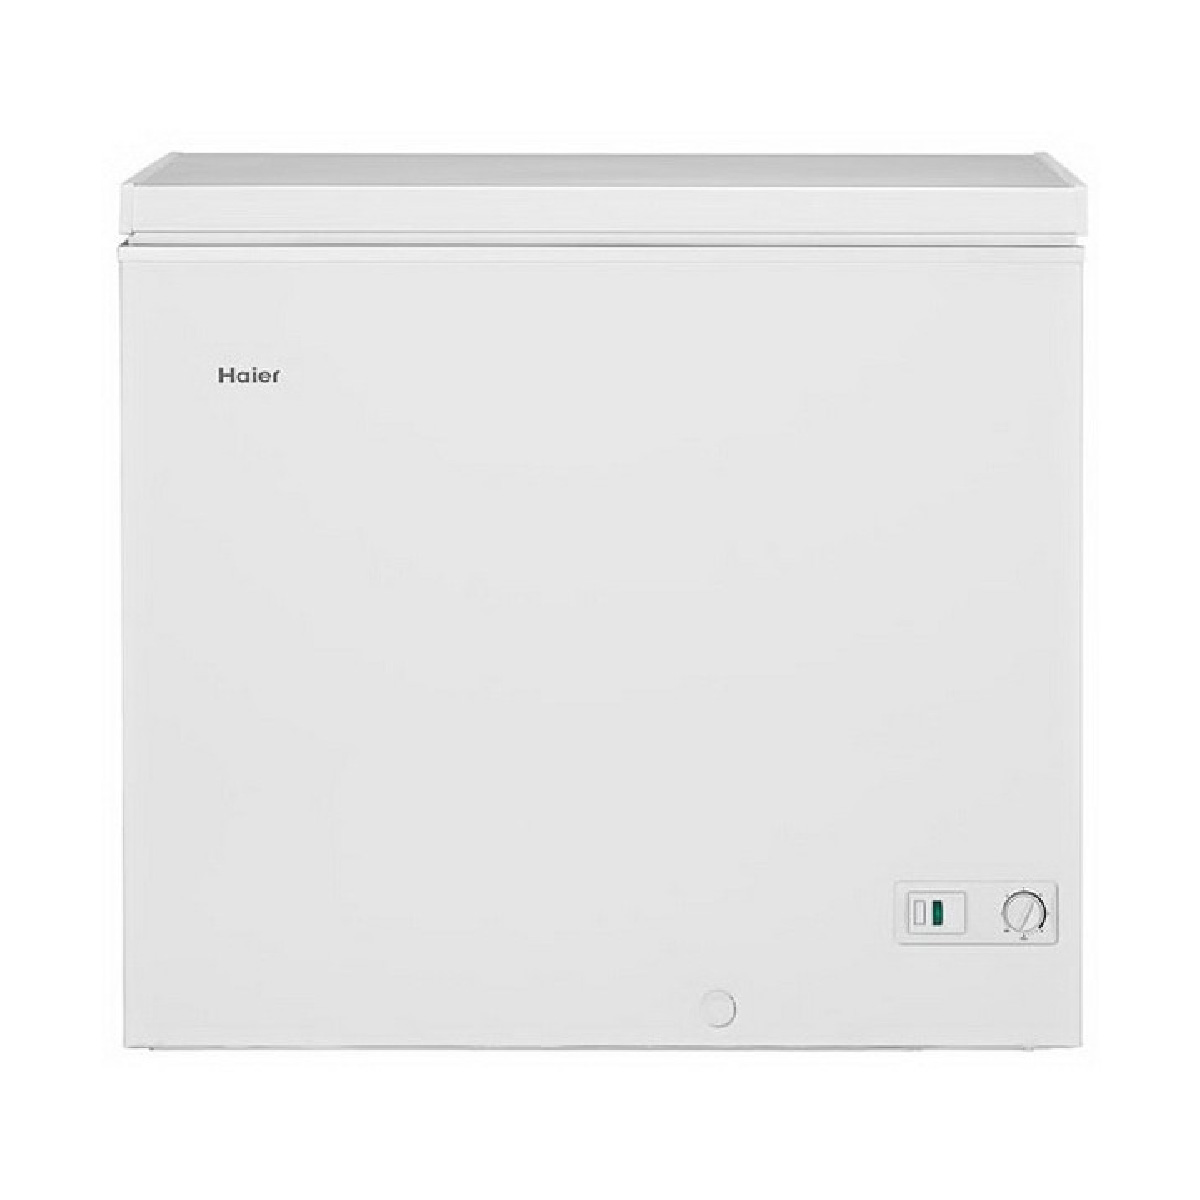 208L Haier Chest Freezer HCF208WH